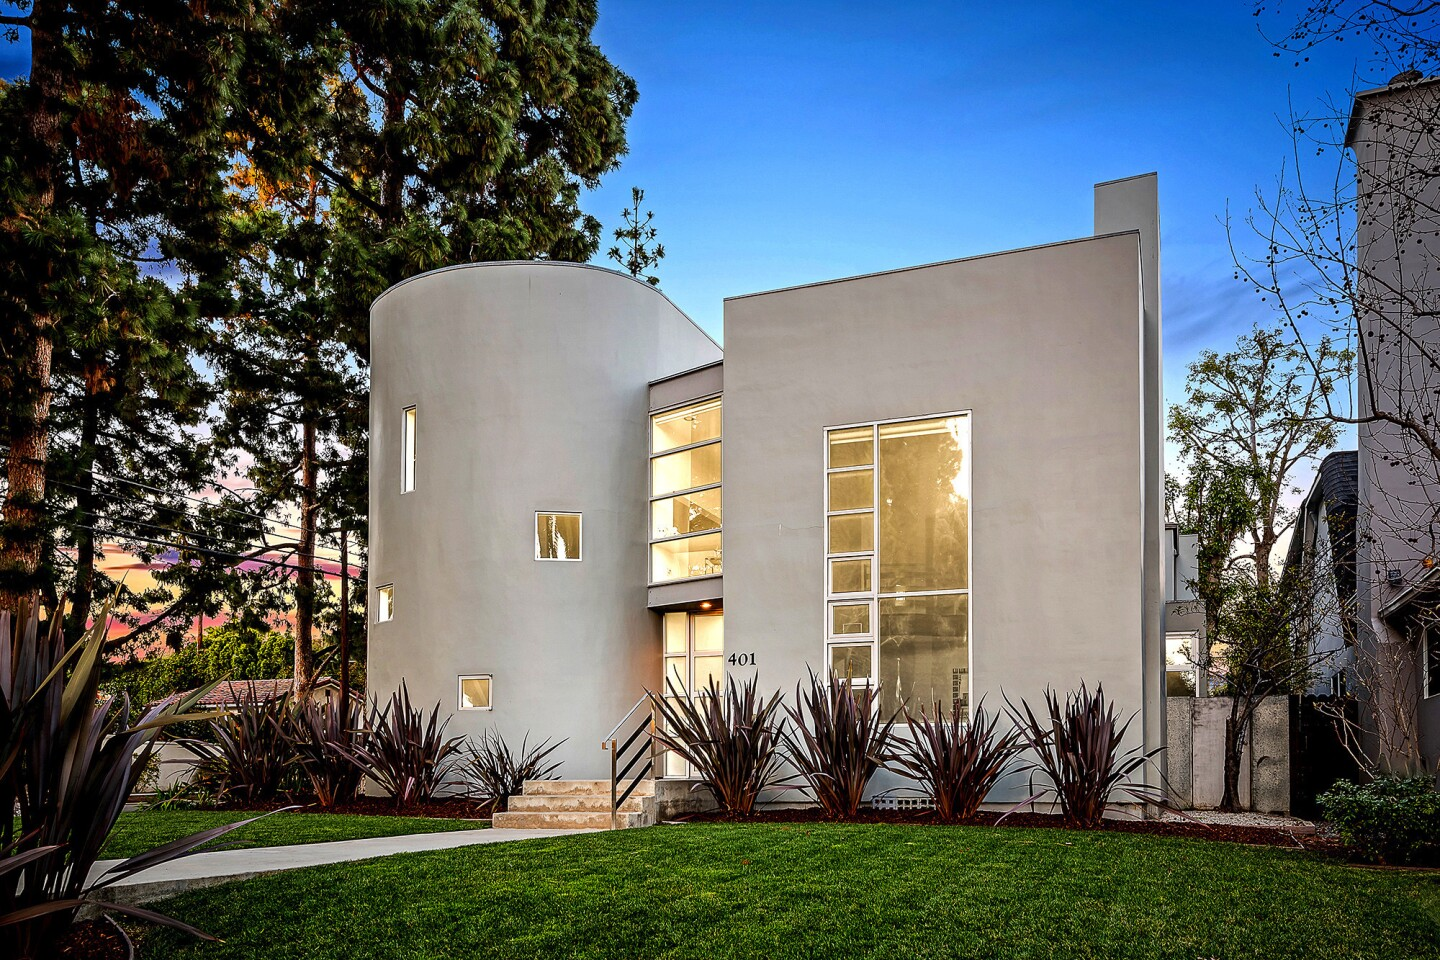 Architect John Powell drew inspiration from Franco-Swiss architect Le Corbusier's Notre Dame du Haut when designing this Santa Monica home.